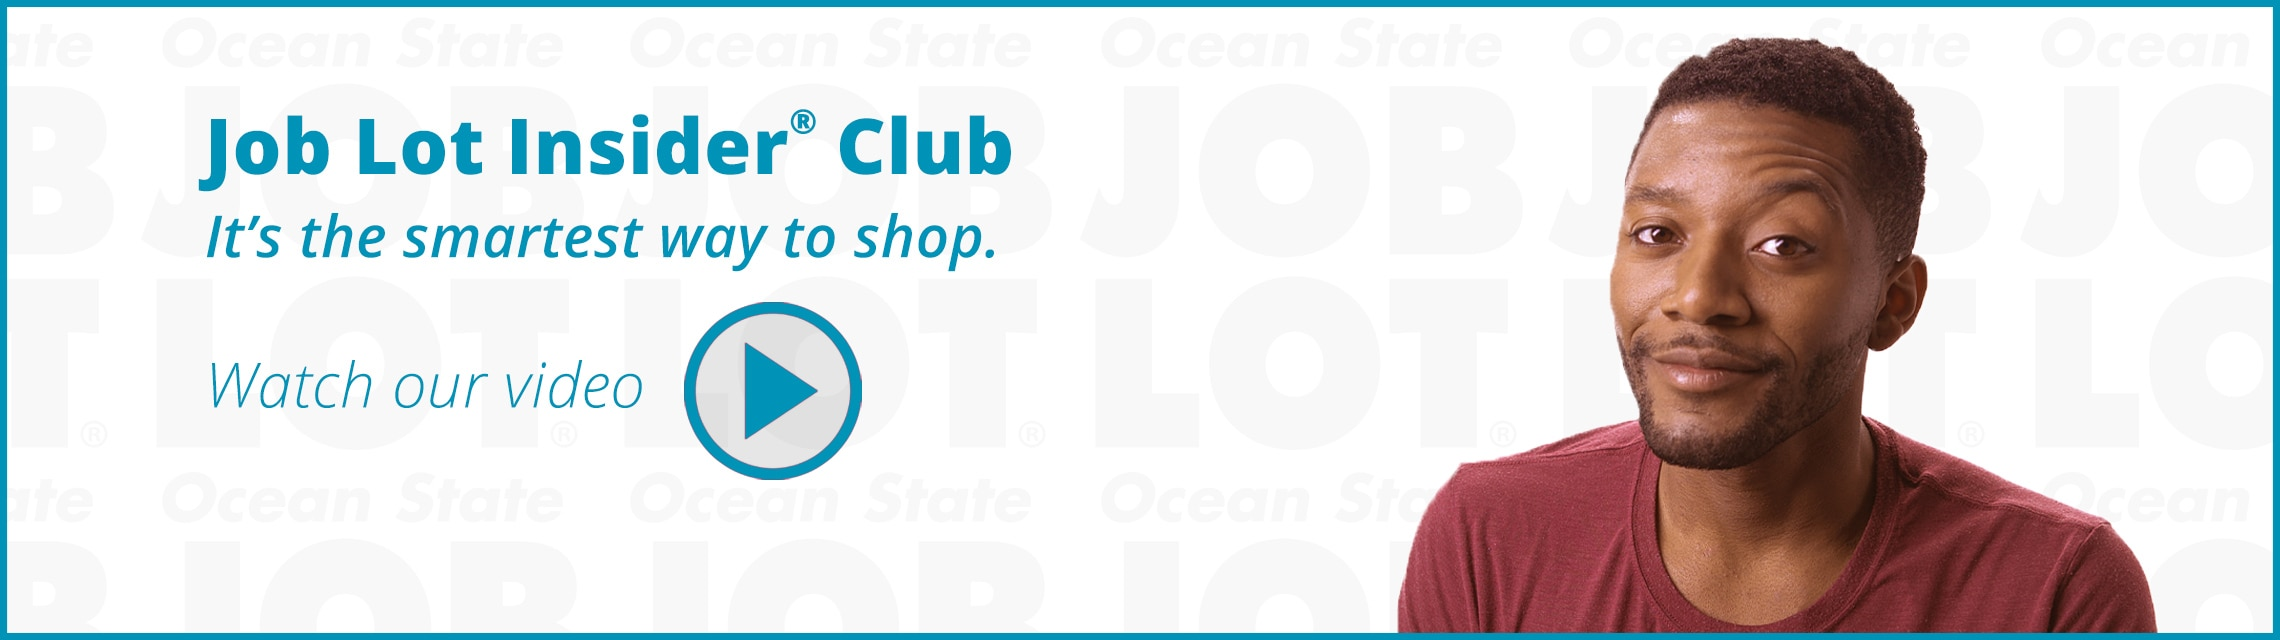 picture regarding Ocean State Job Lots Coupons Printable known as Insider Club